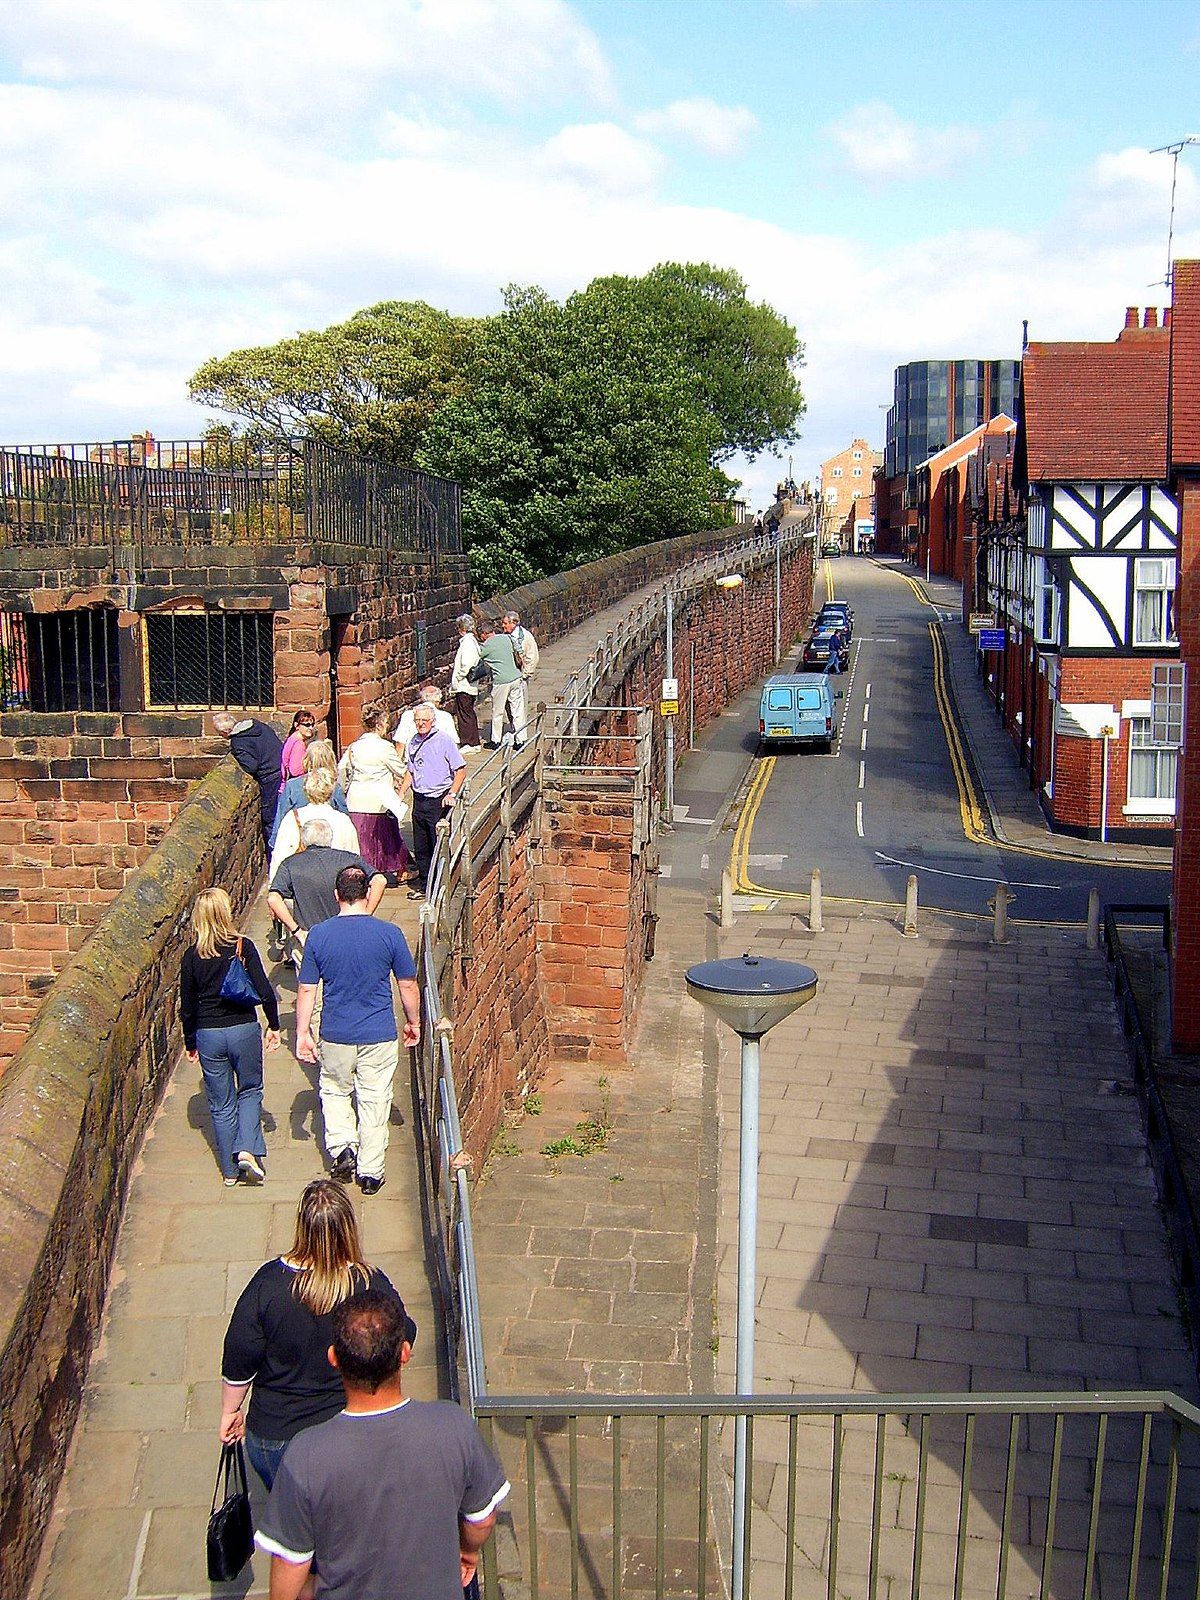 Chester City Walls Simple English Wikipedia The Free